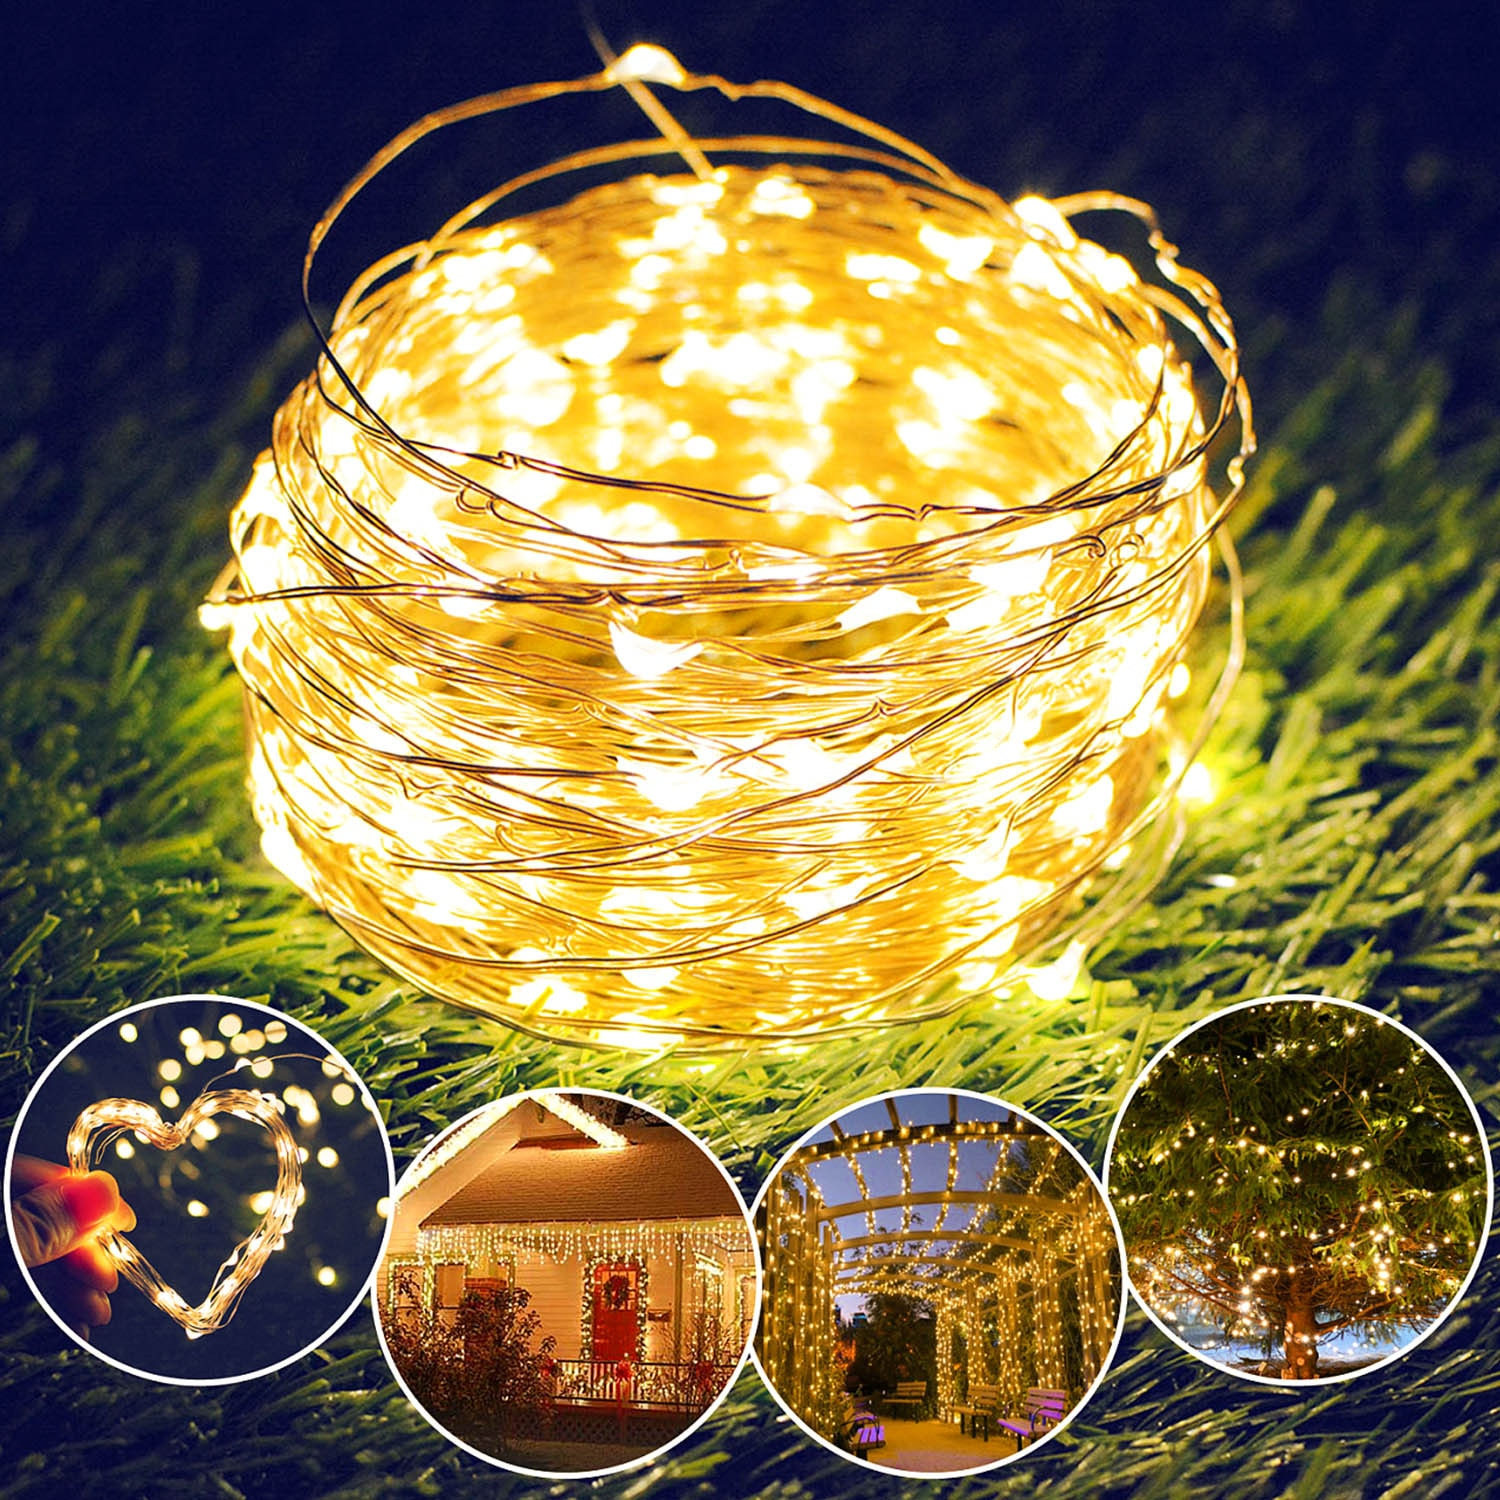 H11f27d1caf474204bcccaee71da37e04e - Christmas LED String light 2M 5M 10M 3AA Battery Operated Garland Outdoor Indoor Home Christmas Decoration fairy Light Led Strip